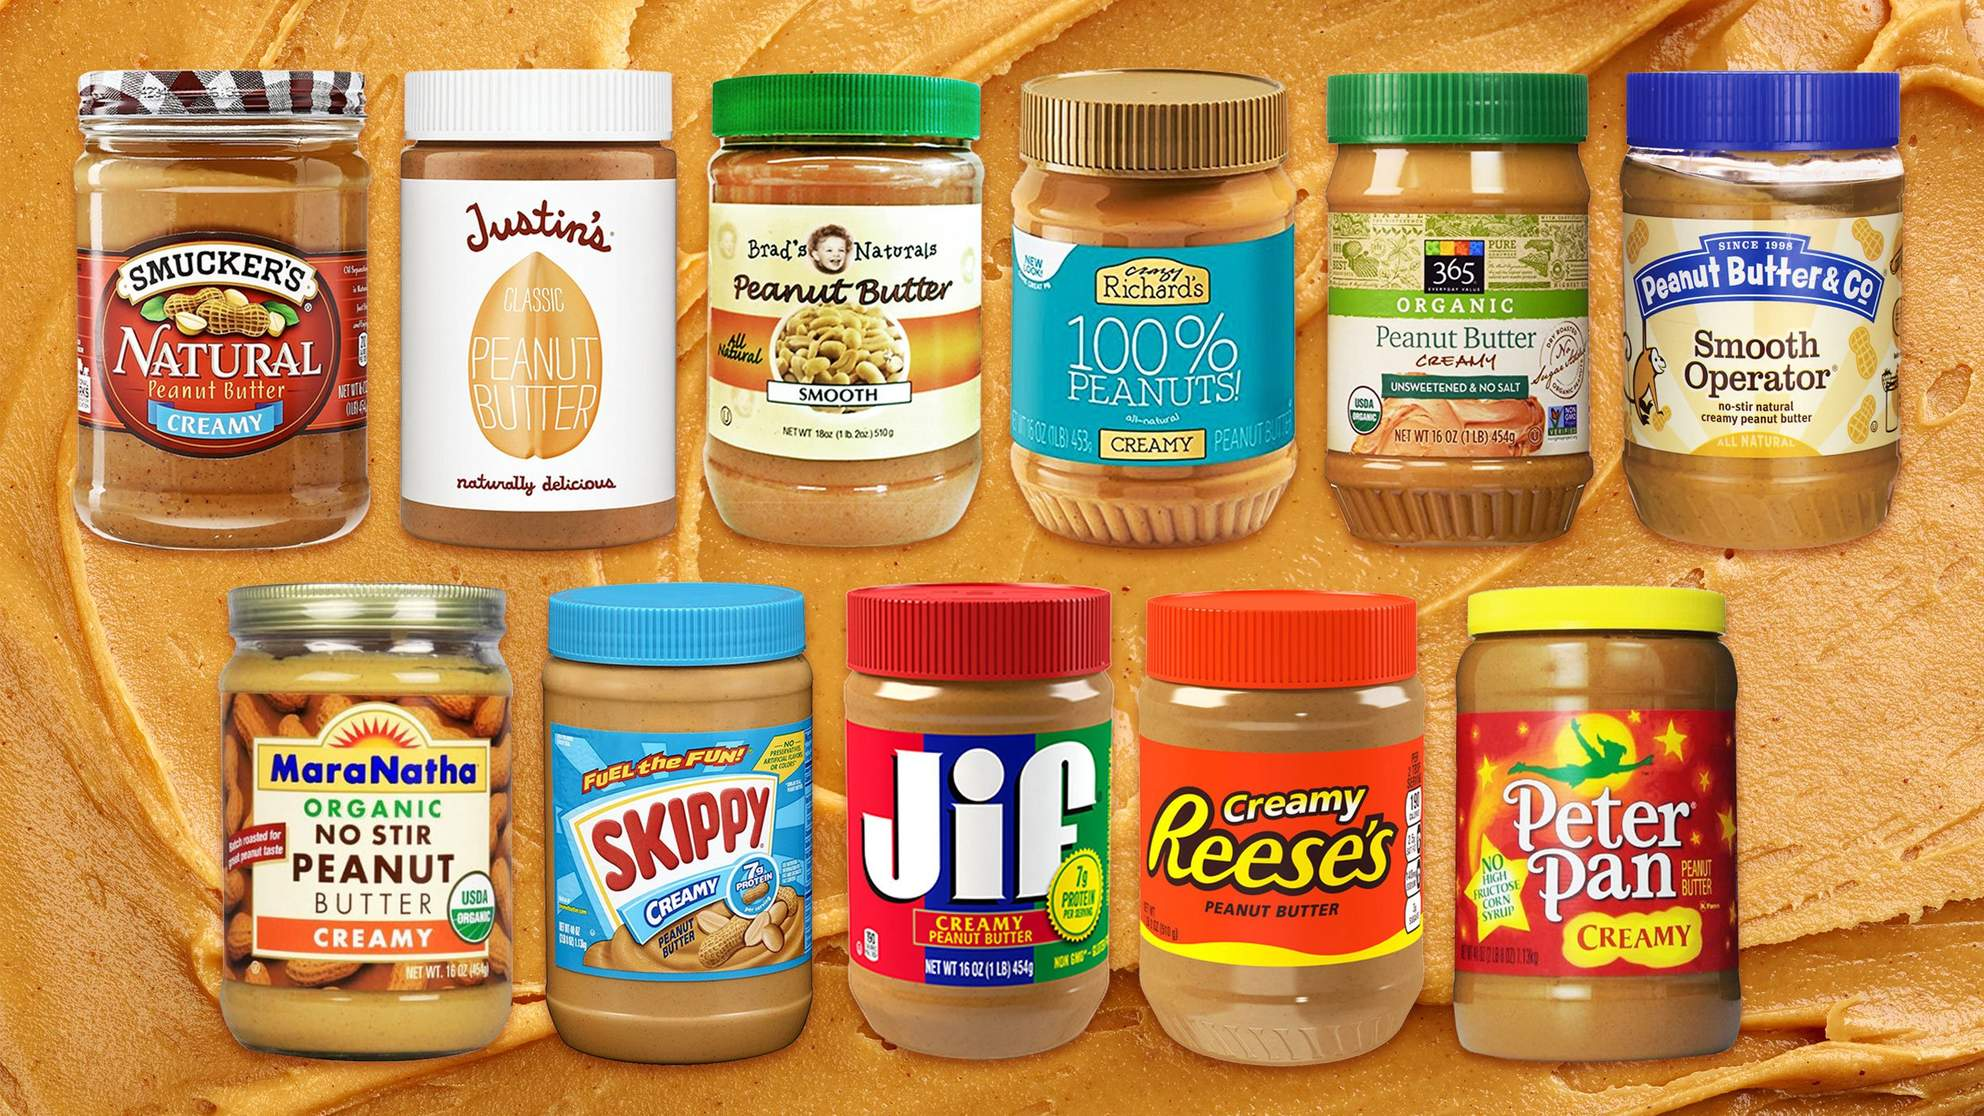 I Tried 11 Peanut Butters and Here's the Best One